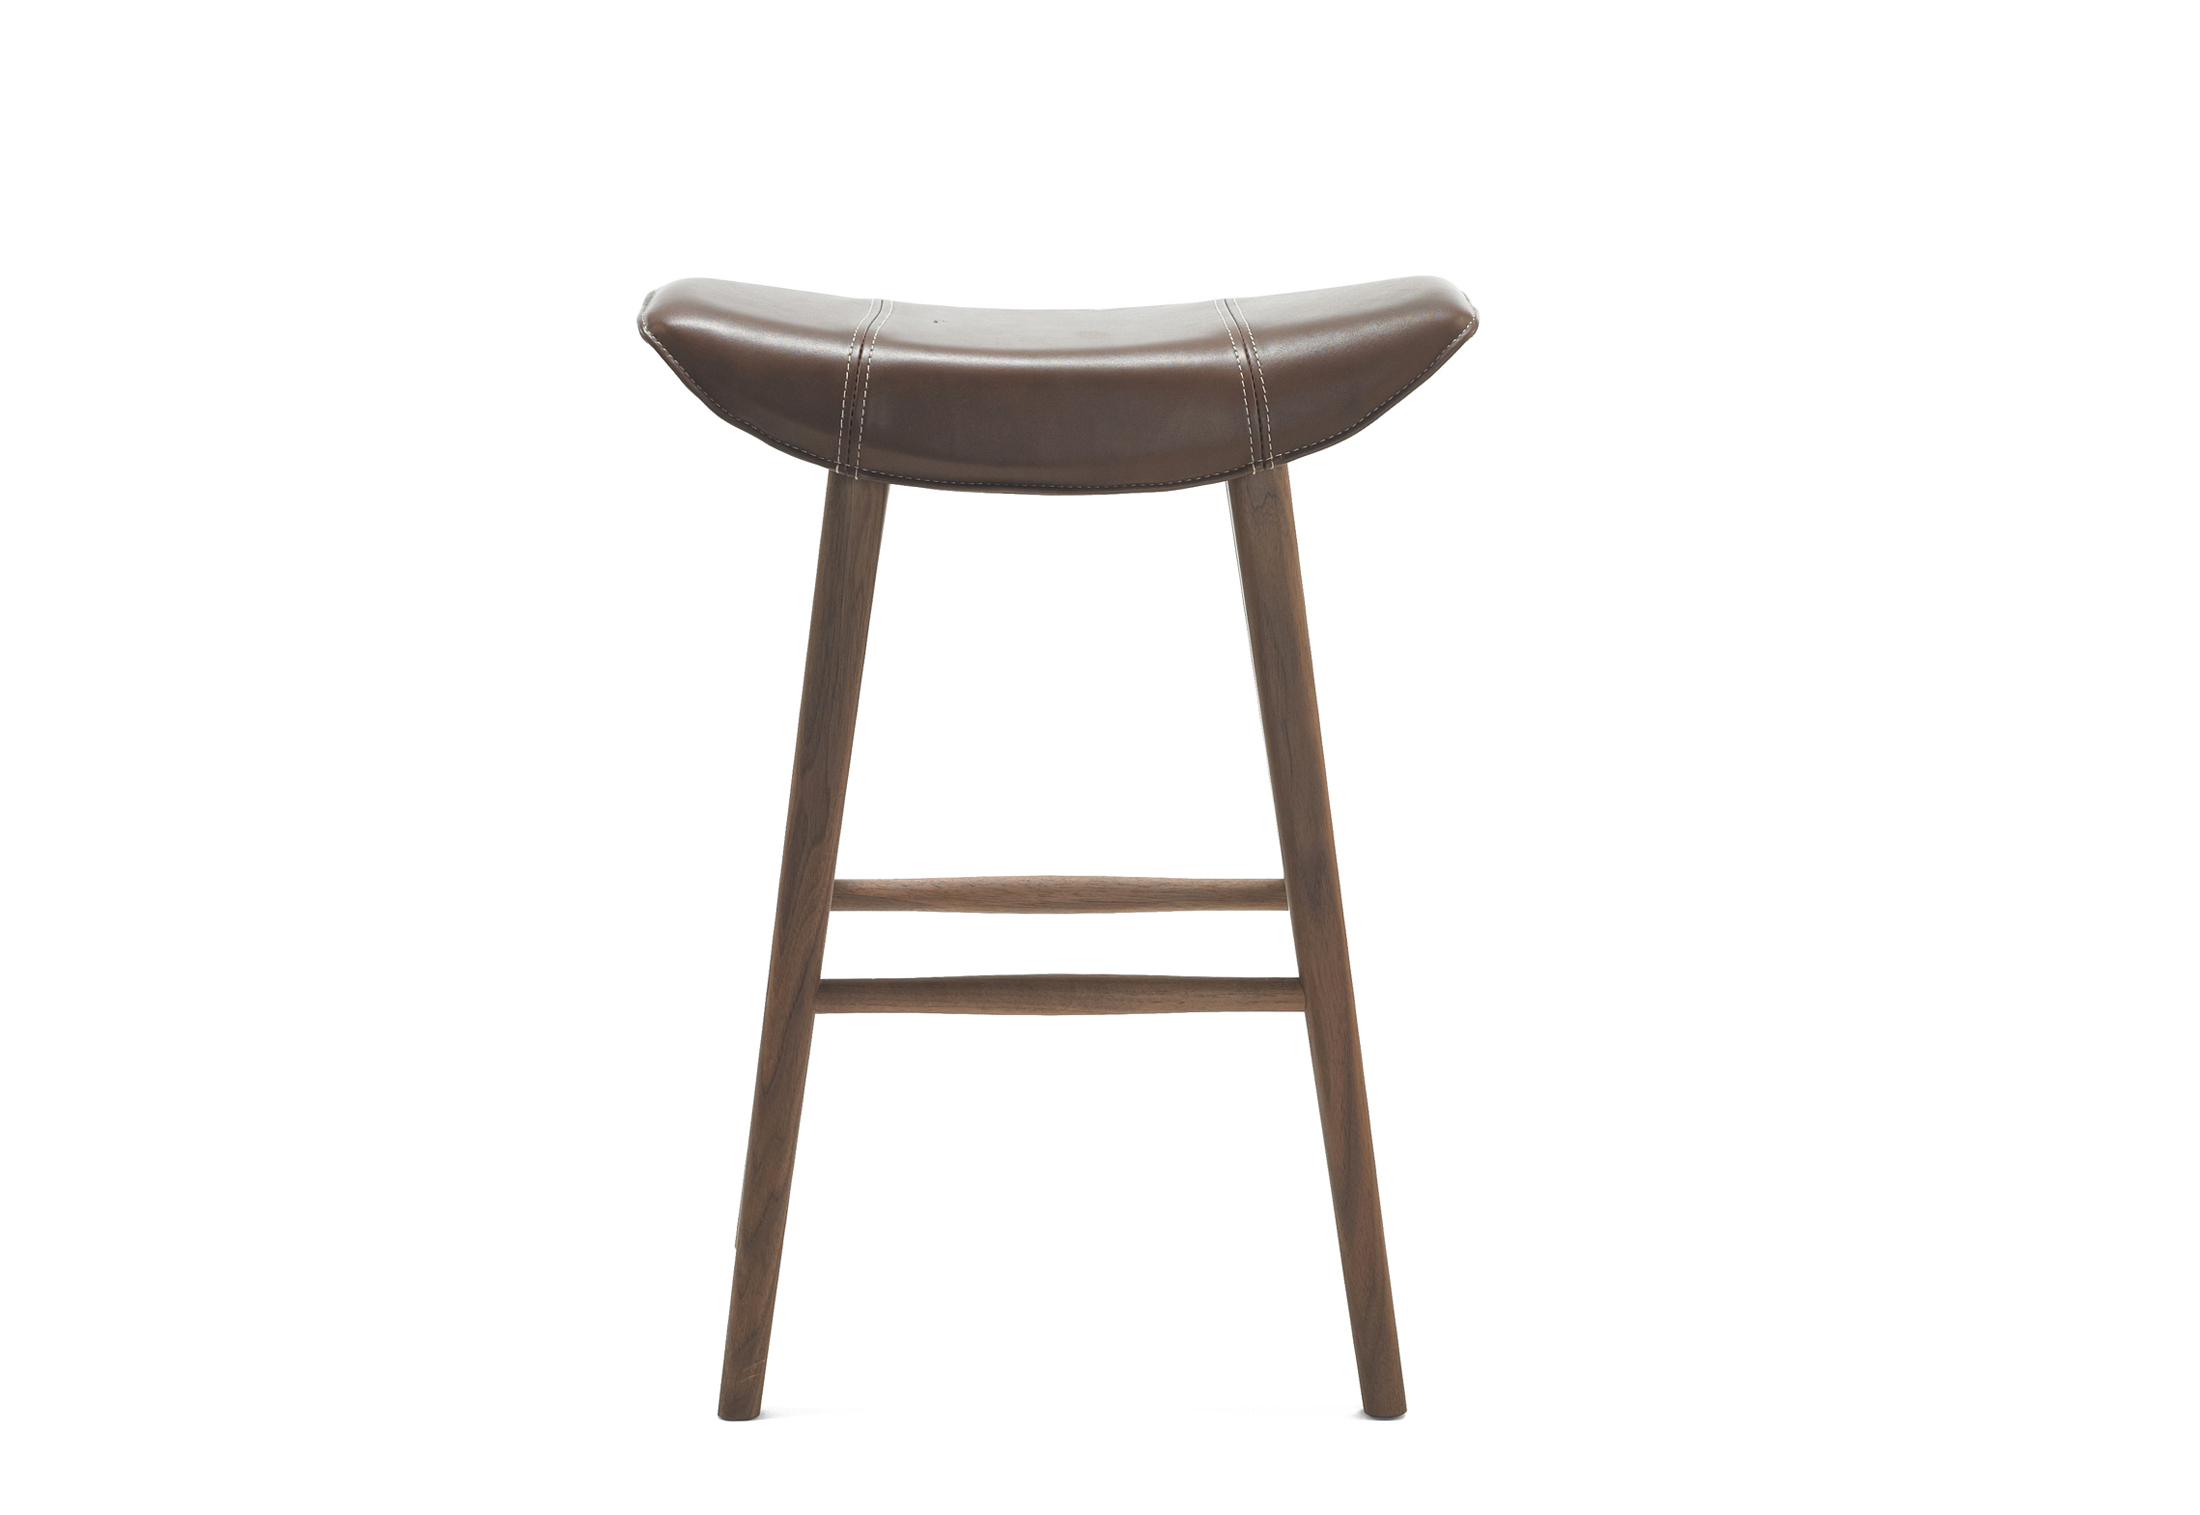 Kya kitchen stool with wooden frame by Freifrau | STYLEPARK